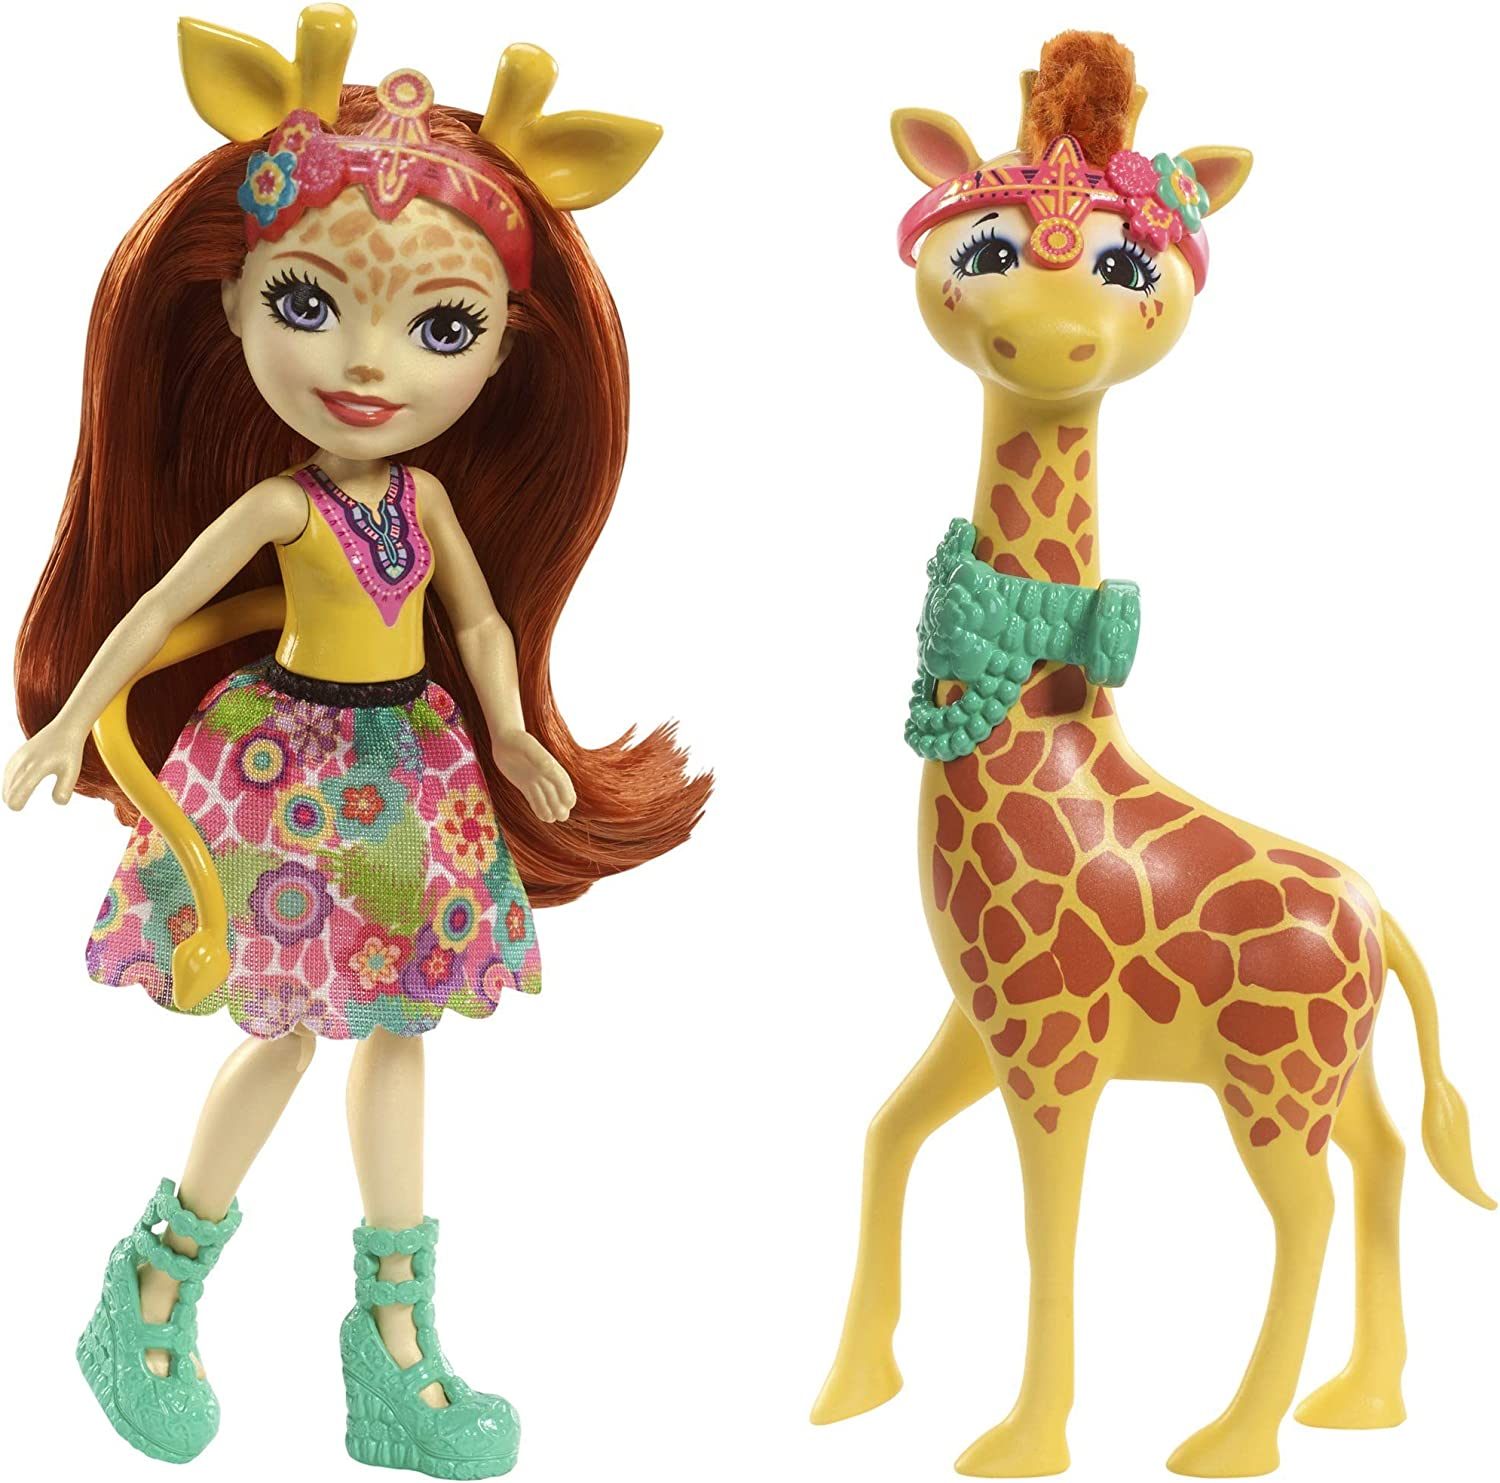 Enchantimals-FKY74 Echantimals Muñeca Gillian Giraffe, colores, única (Mattel FKY74)